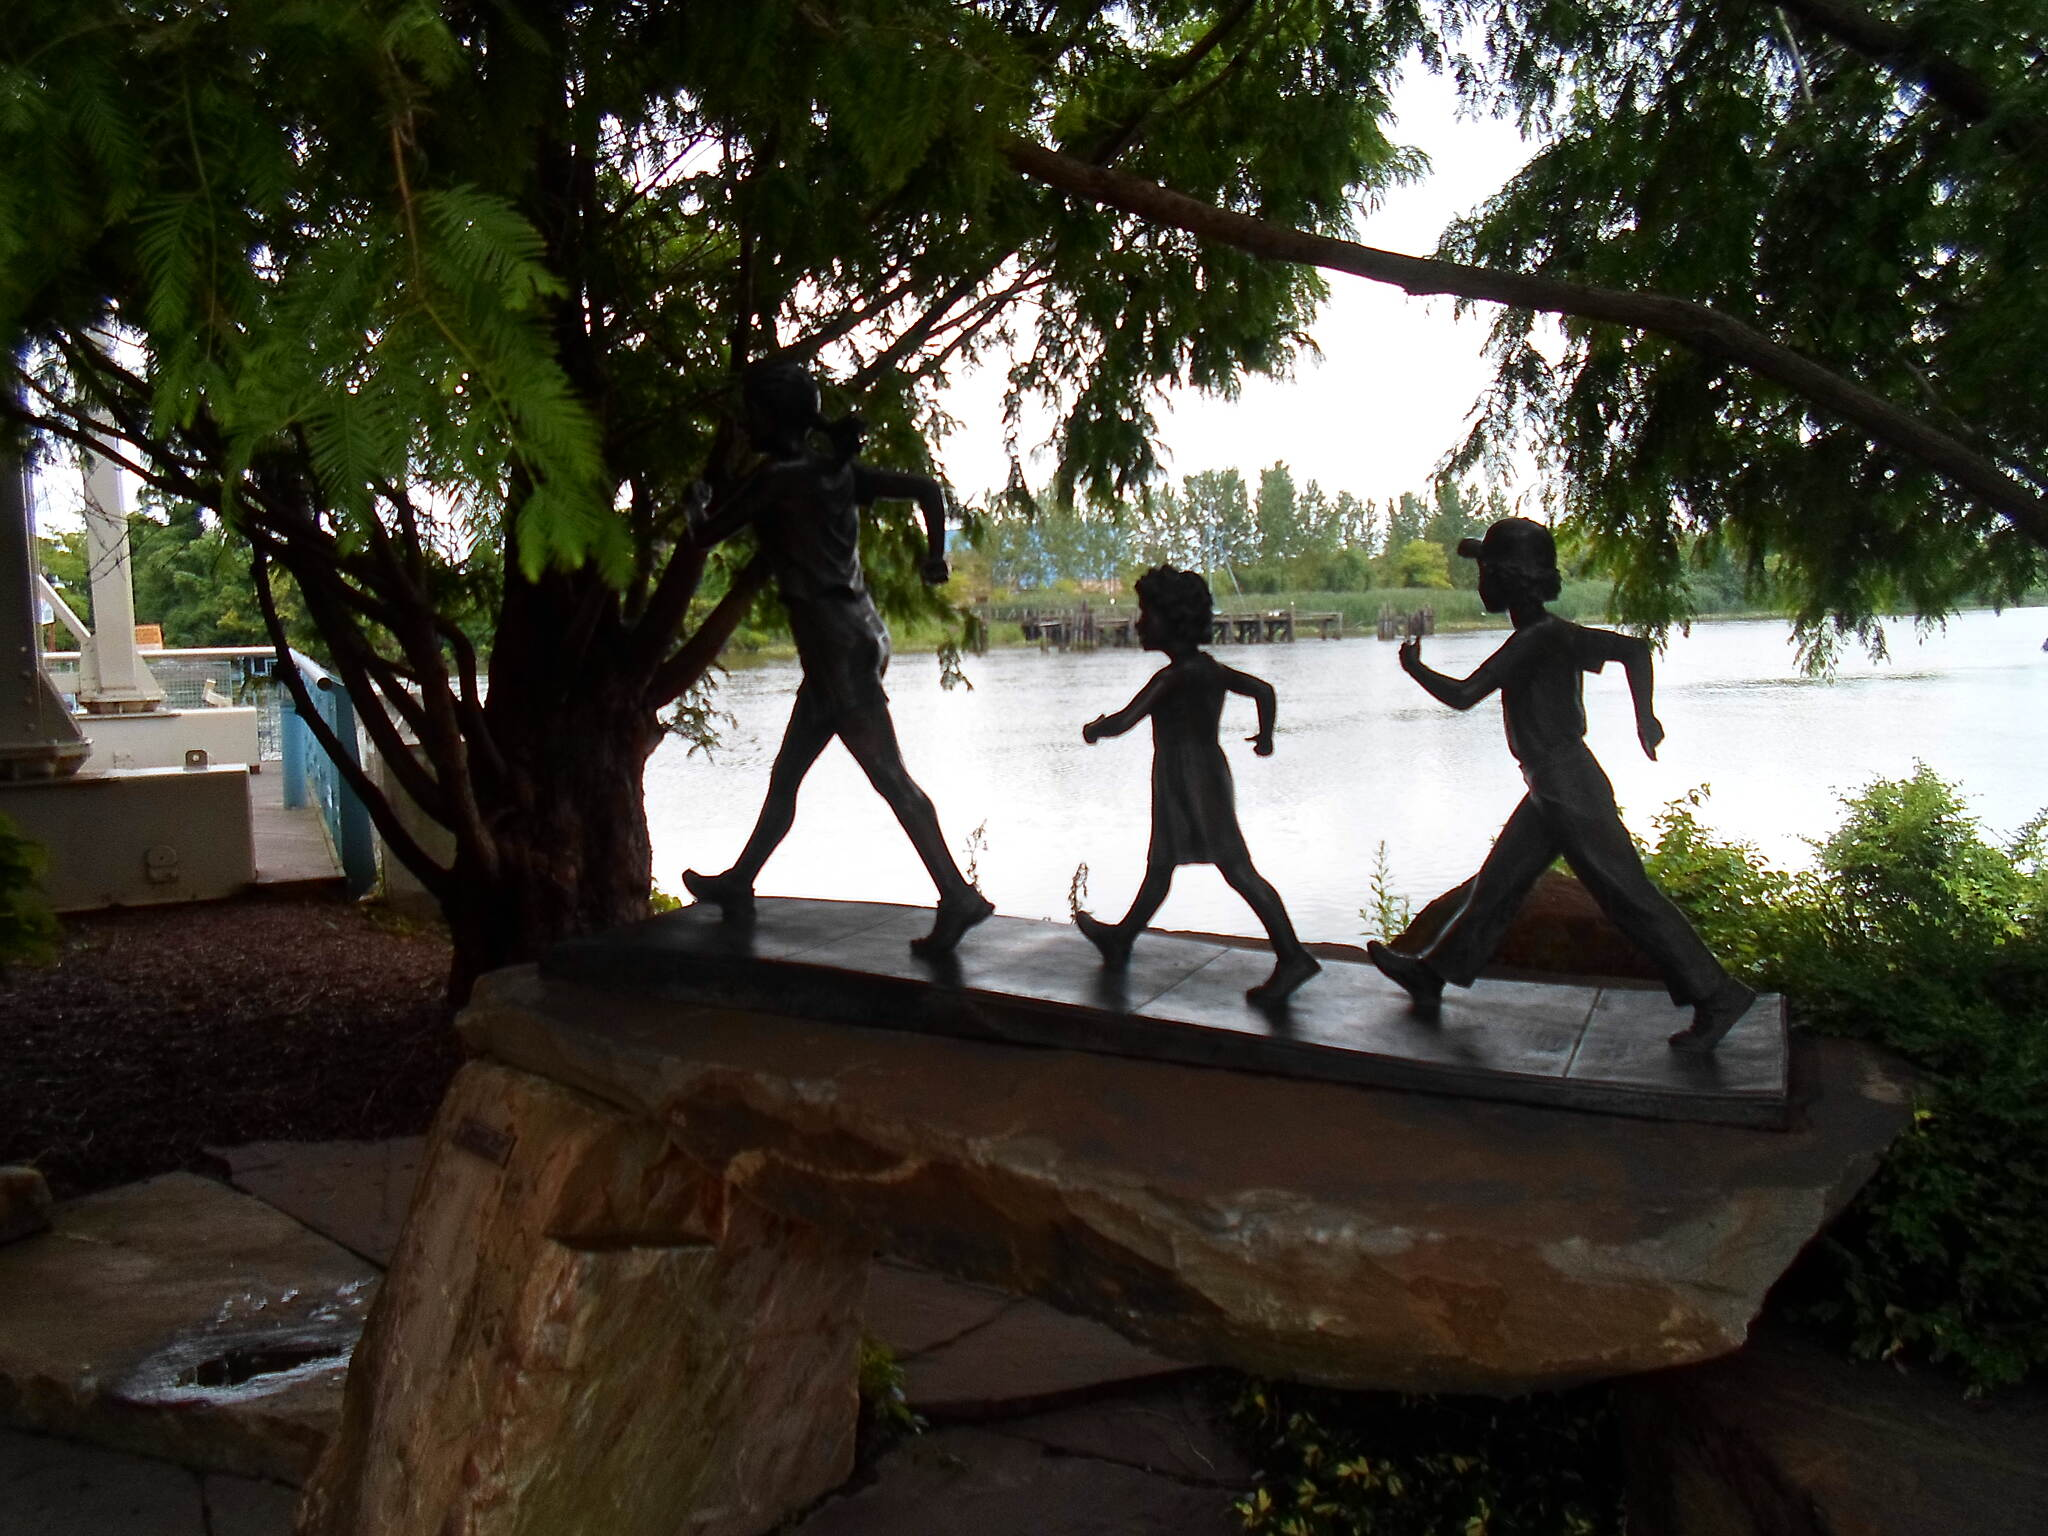 Christina Riverwalk Christina Riverwalk American Heart Association monument, encouraging exercise. Taken August 2014.